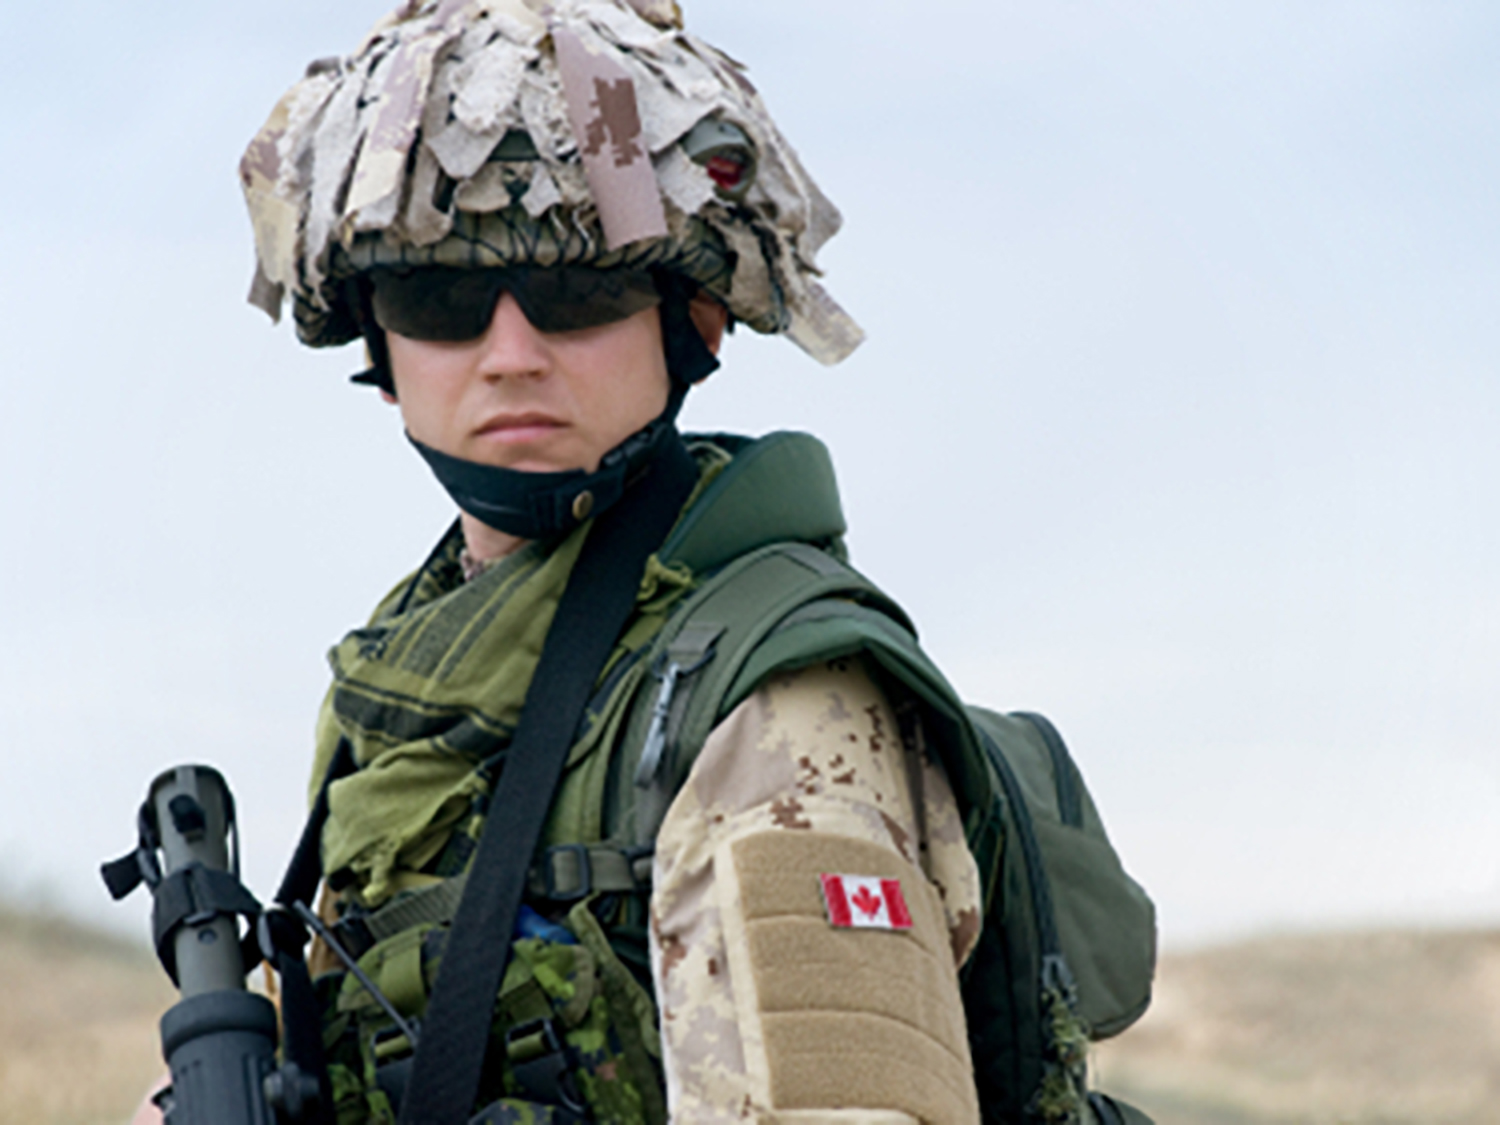 services to veterans are offered by the Royal Canadian Legion, Canmore, Alberta